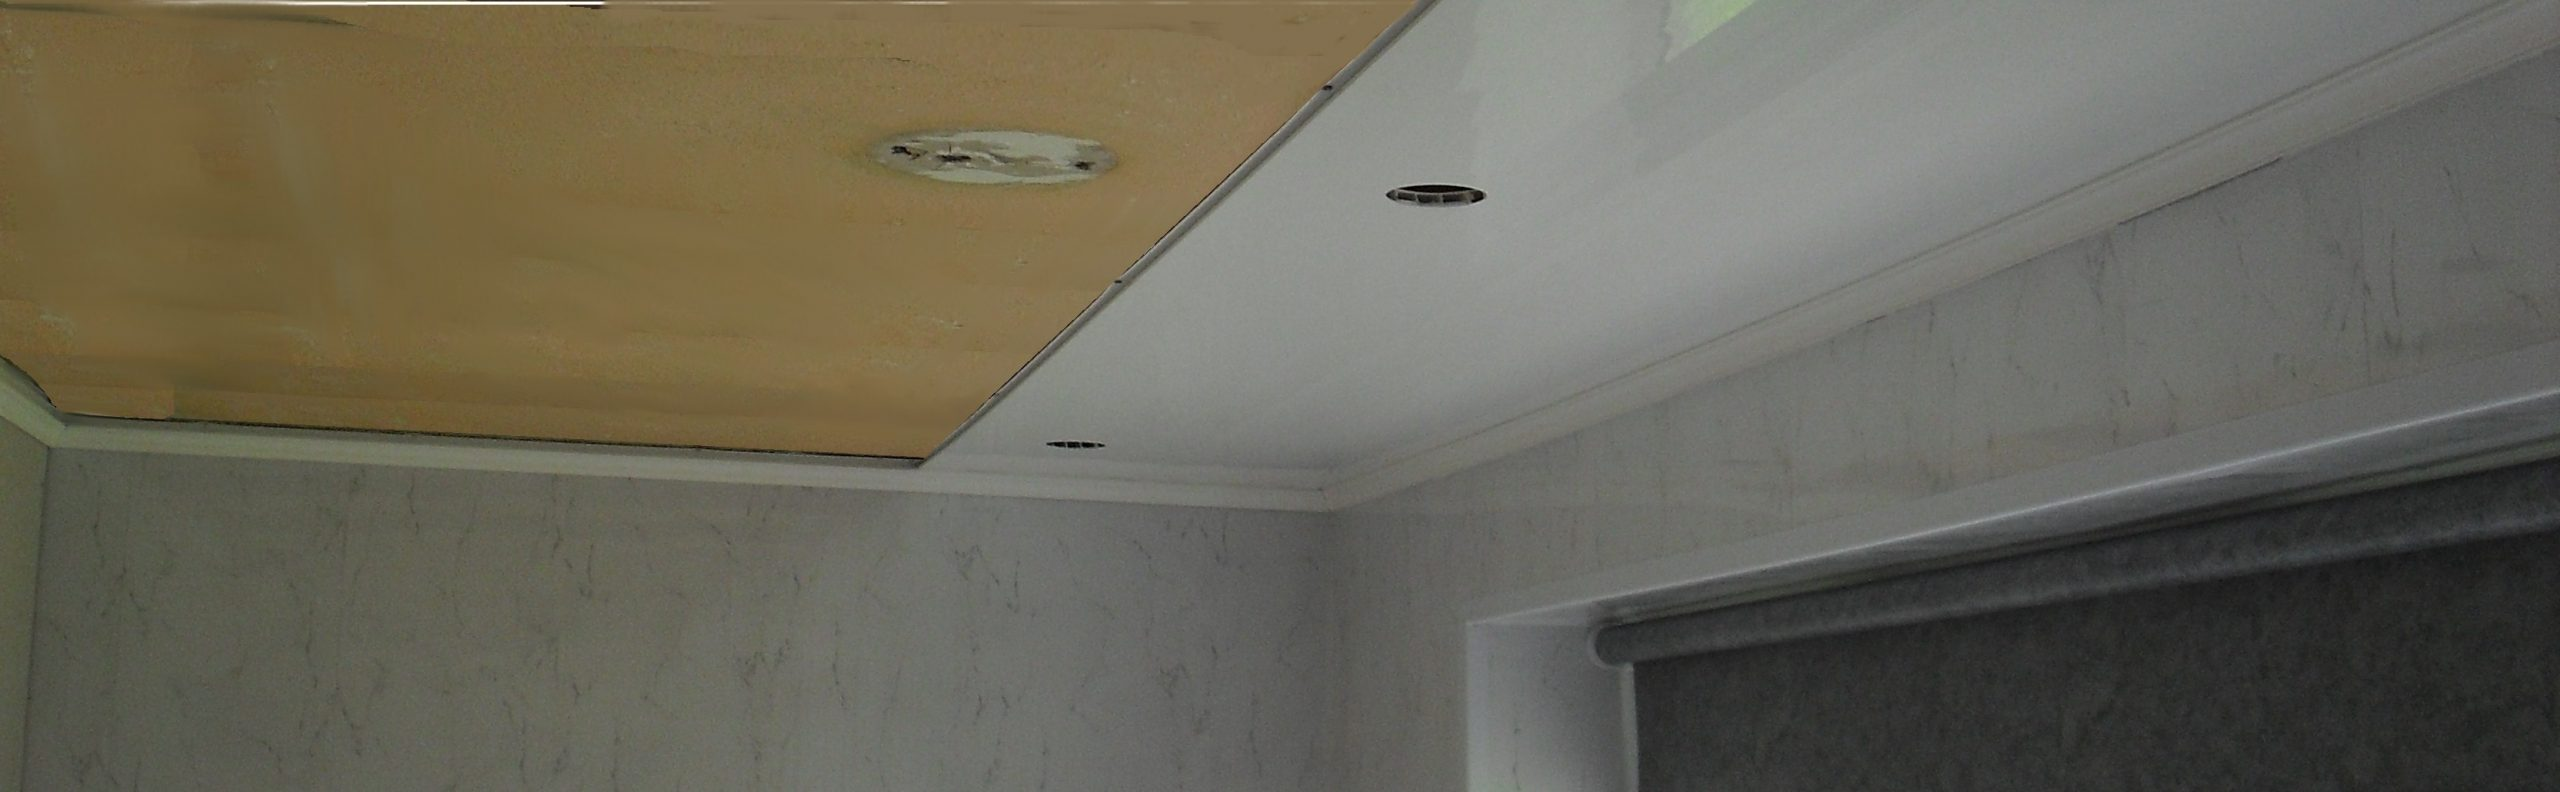 How To Fit Ceiling Panels A Guide From The Bathroom Marquee 40+ Bathroom Ceiling Cladding Ideas